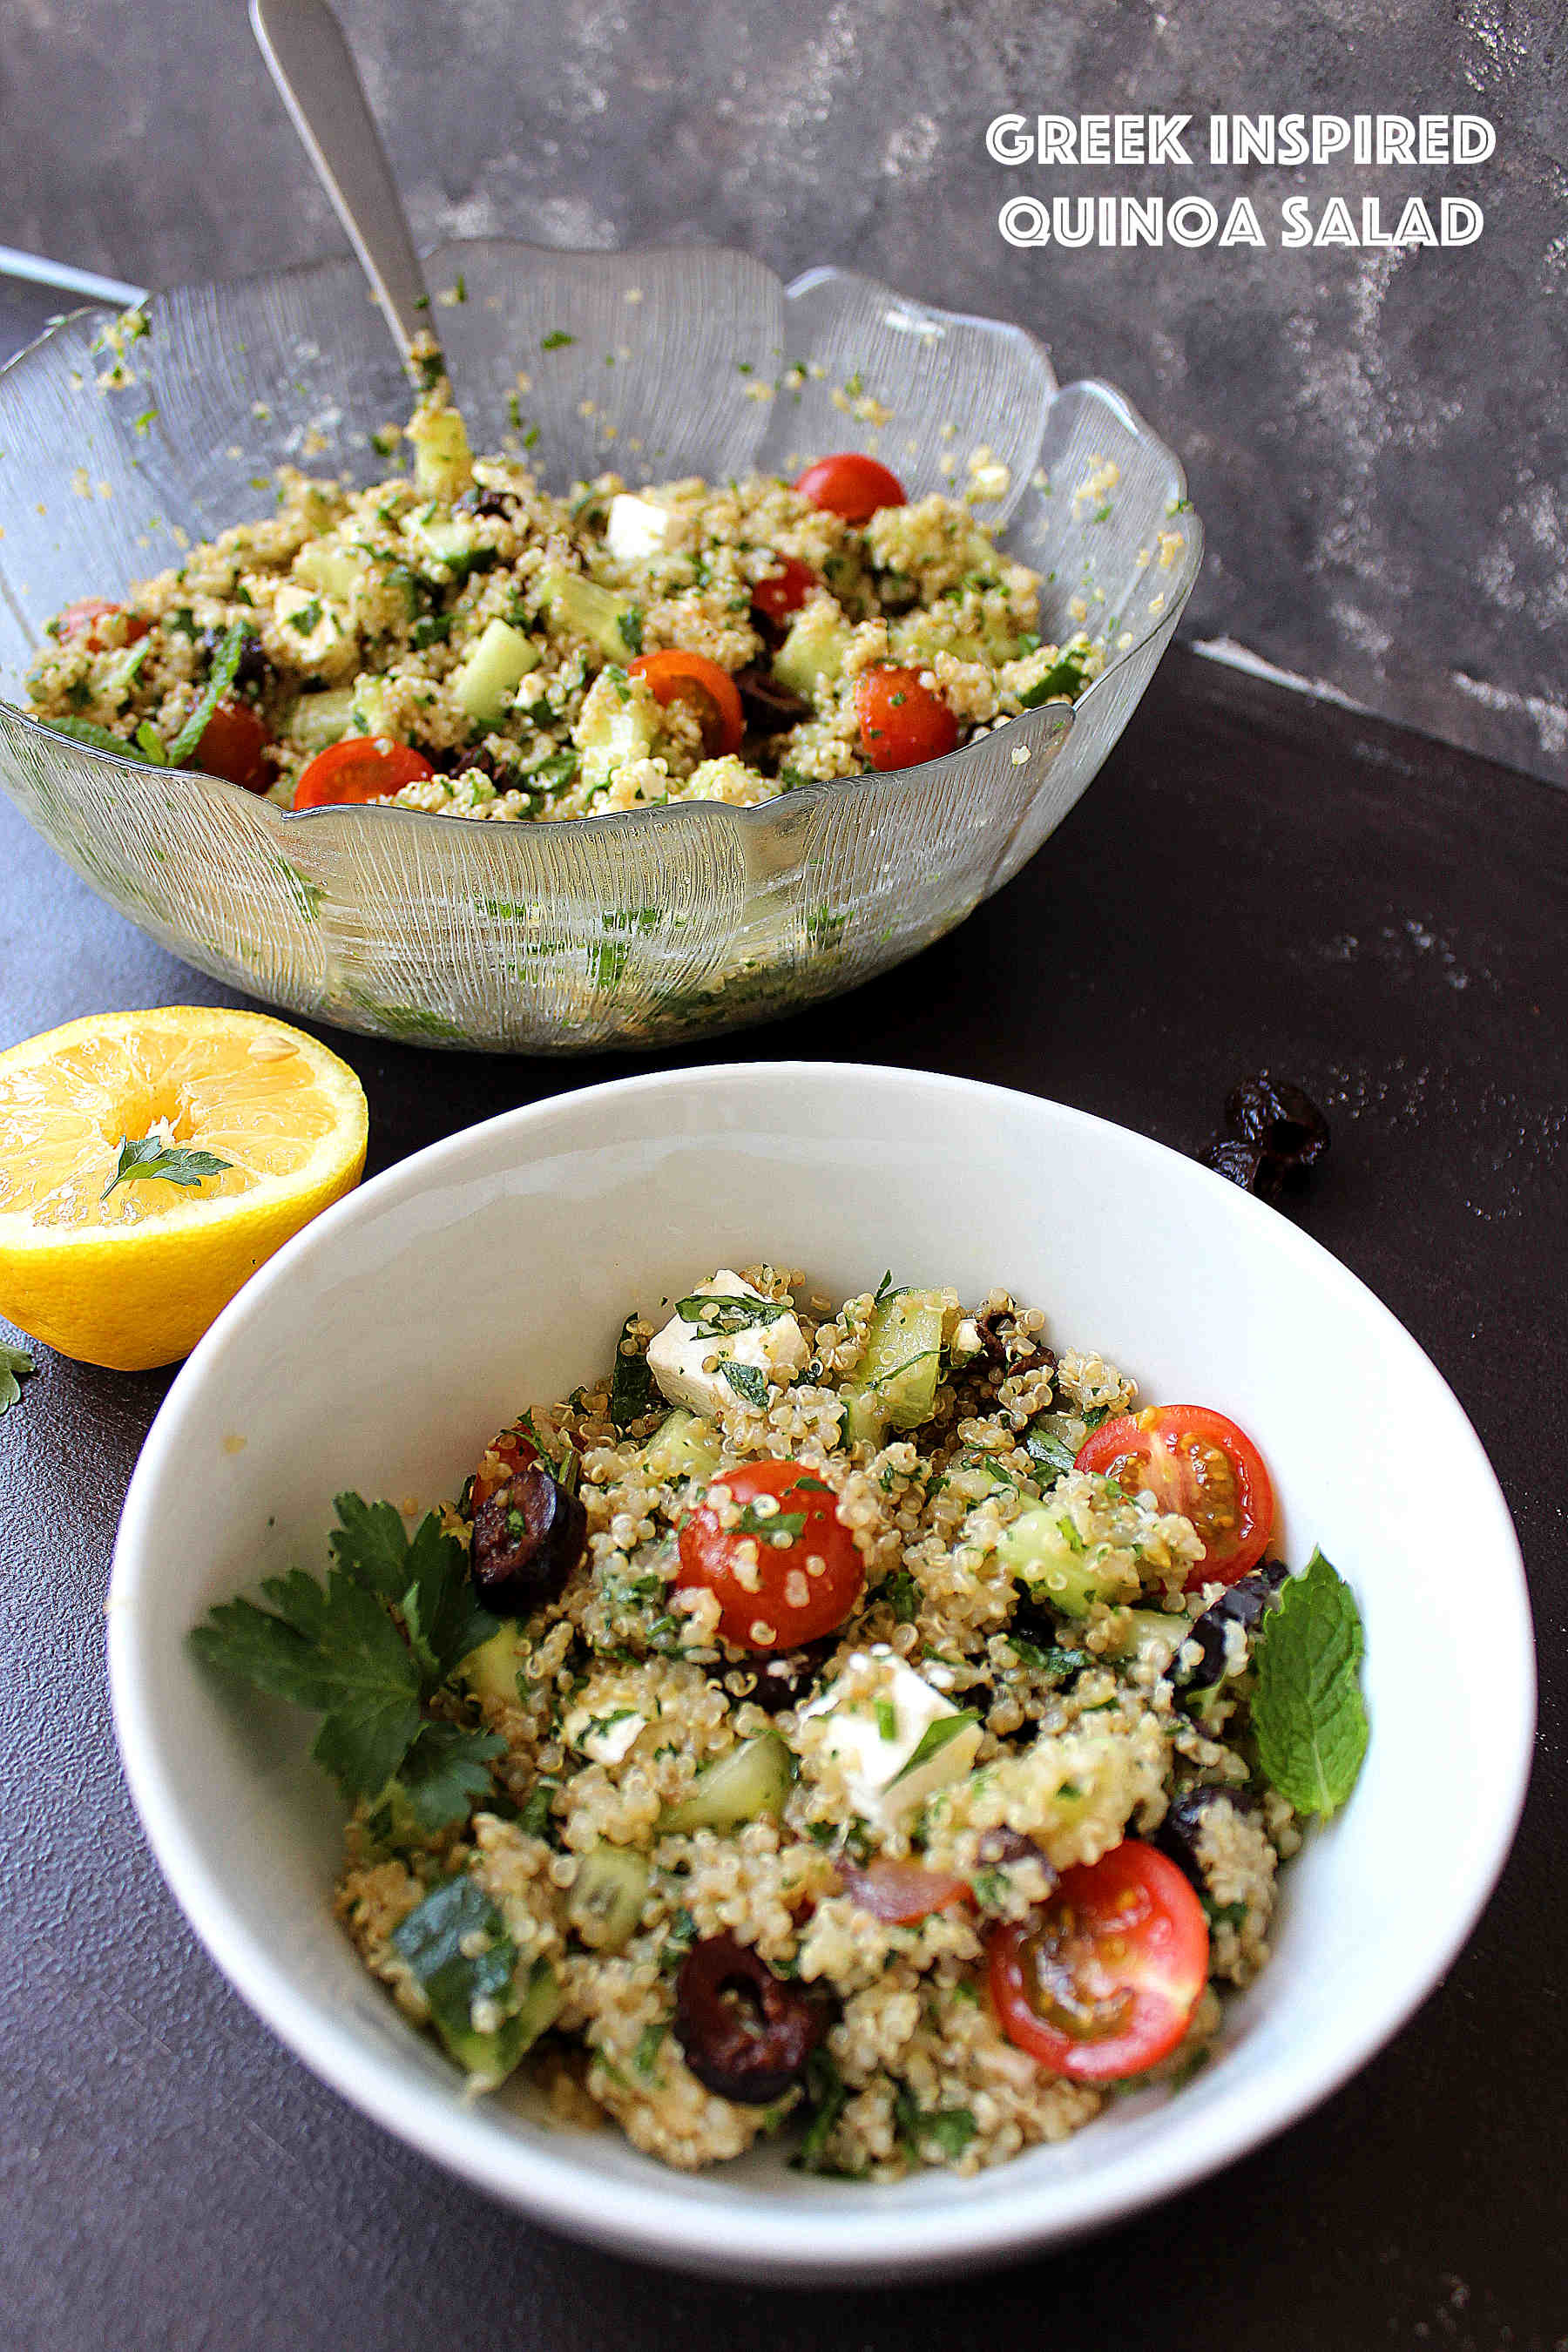 Greek inspired quinoa salad